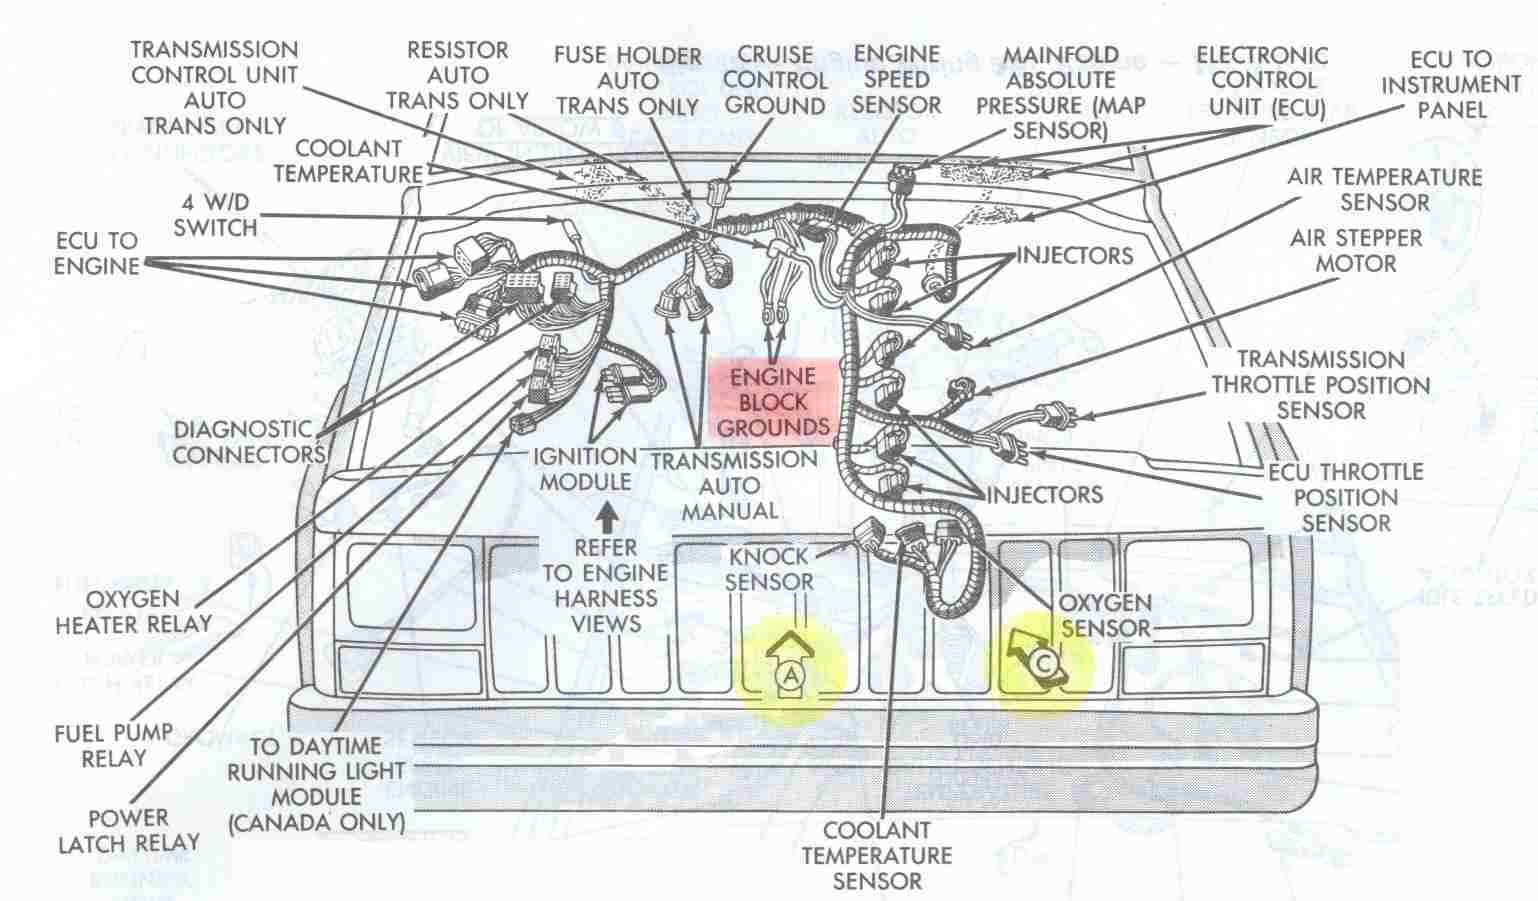 hight resolution of 1983 chevy truck fuse box diagram